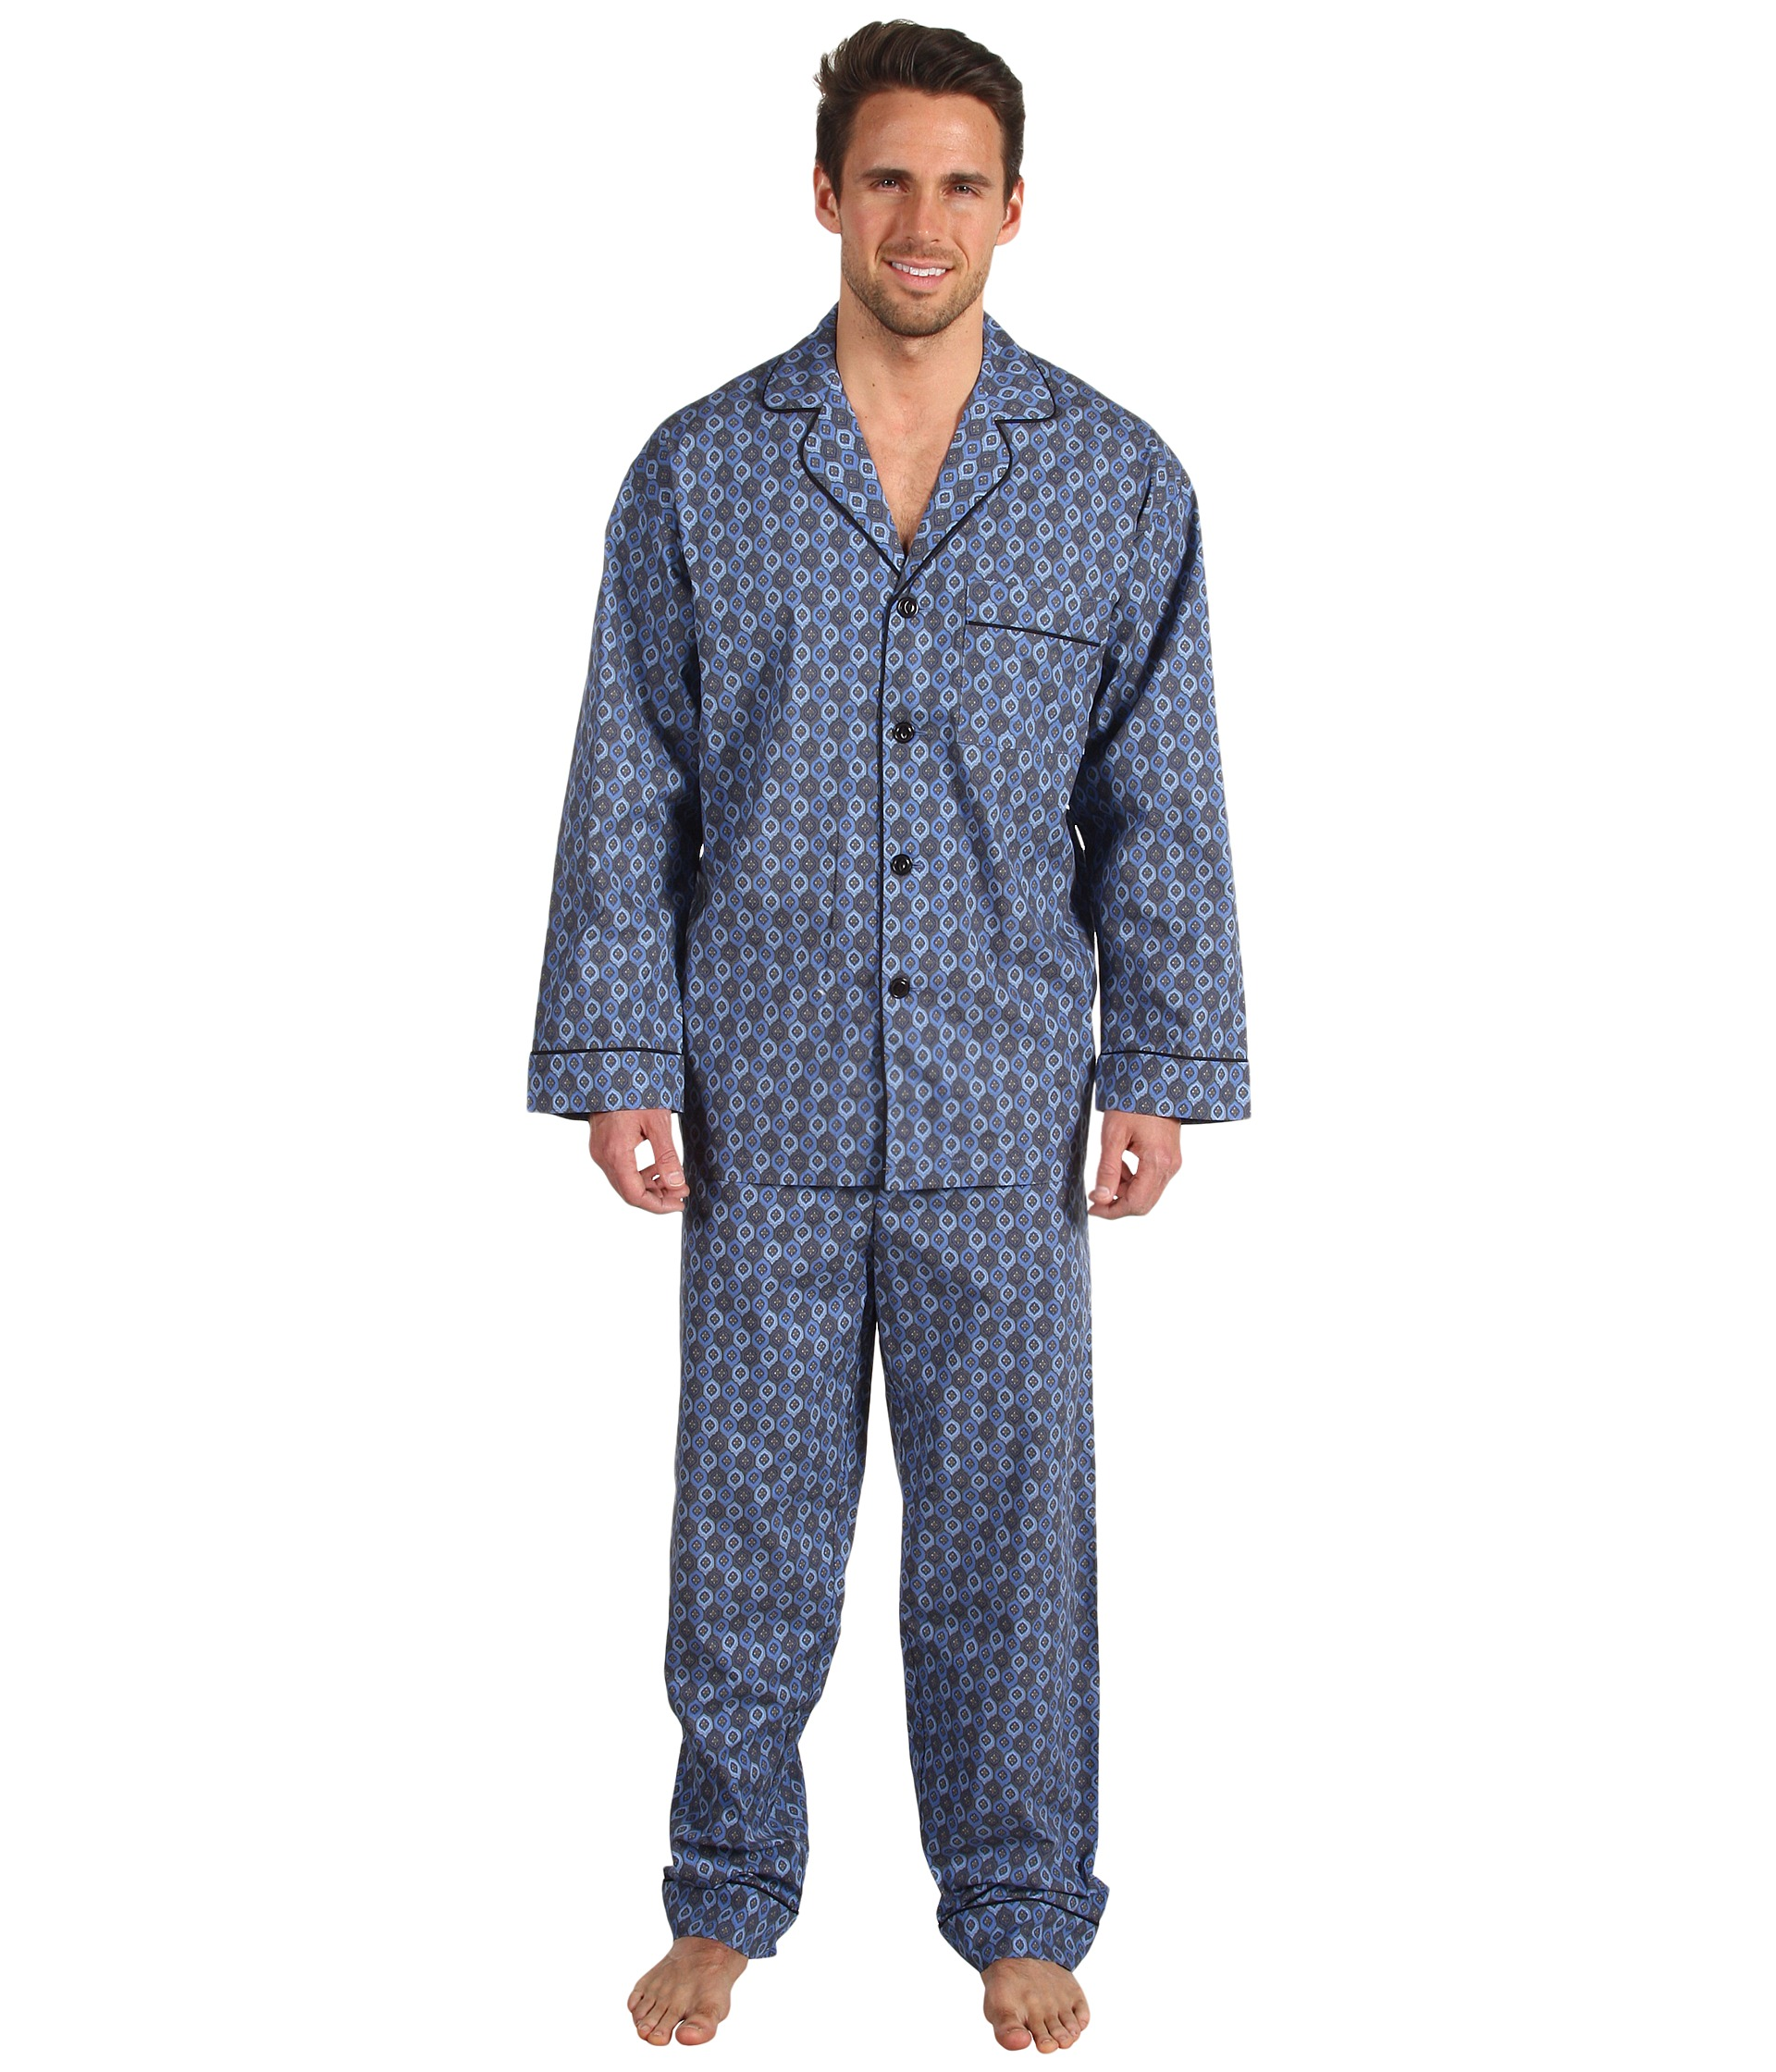 b1c54c9d3f BedHead Mens Classic Pajama Set BOTH Ways on PopScreen